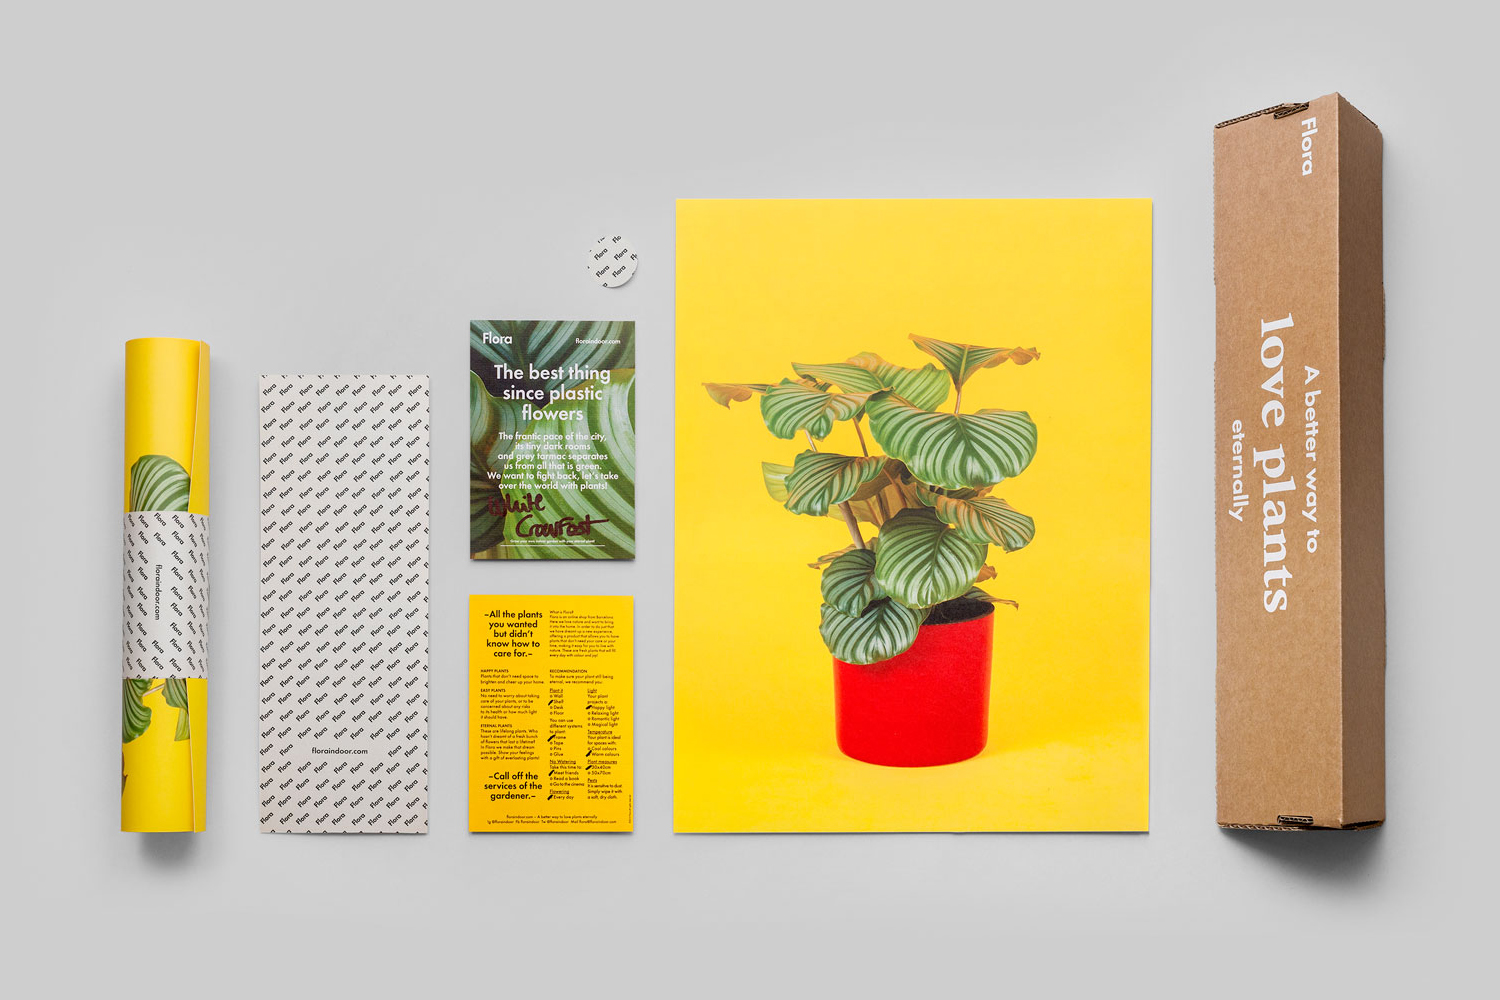 Visual identity and stationery by P.A.R for Barcelona based flower business Flora